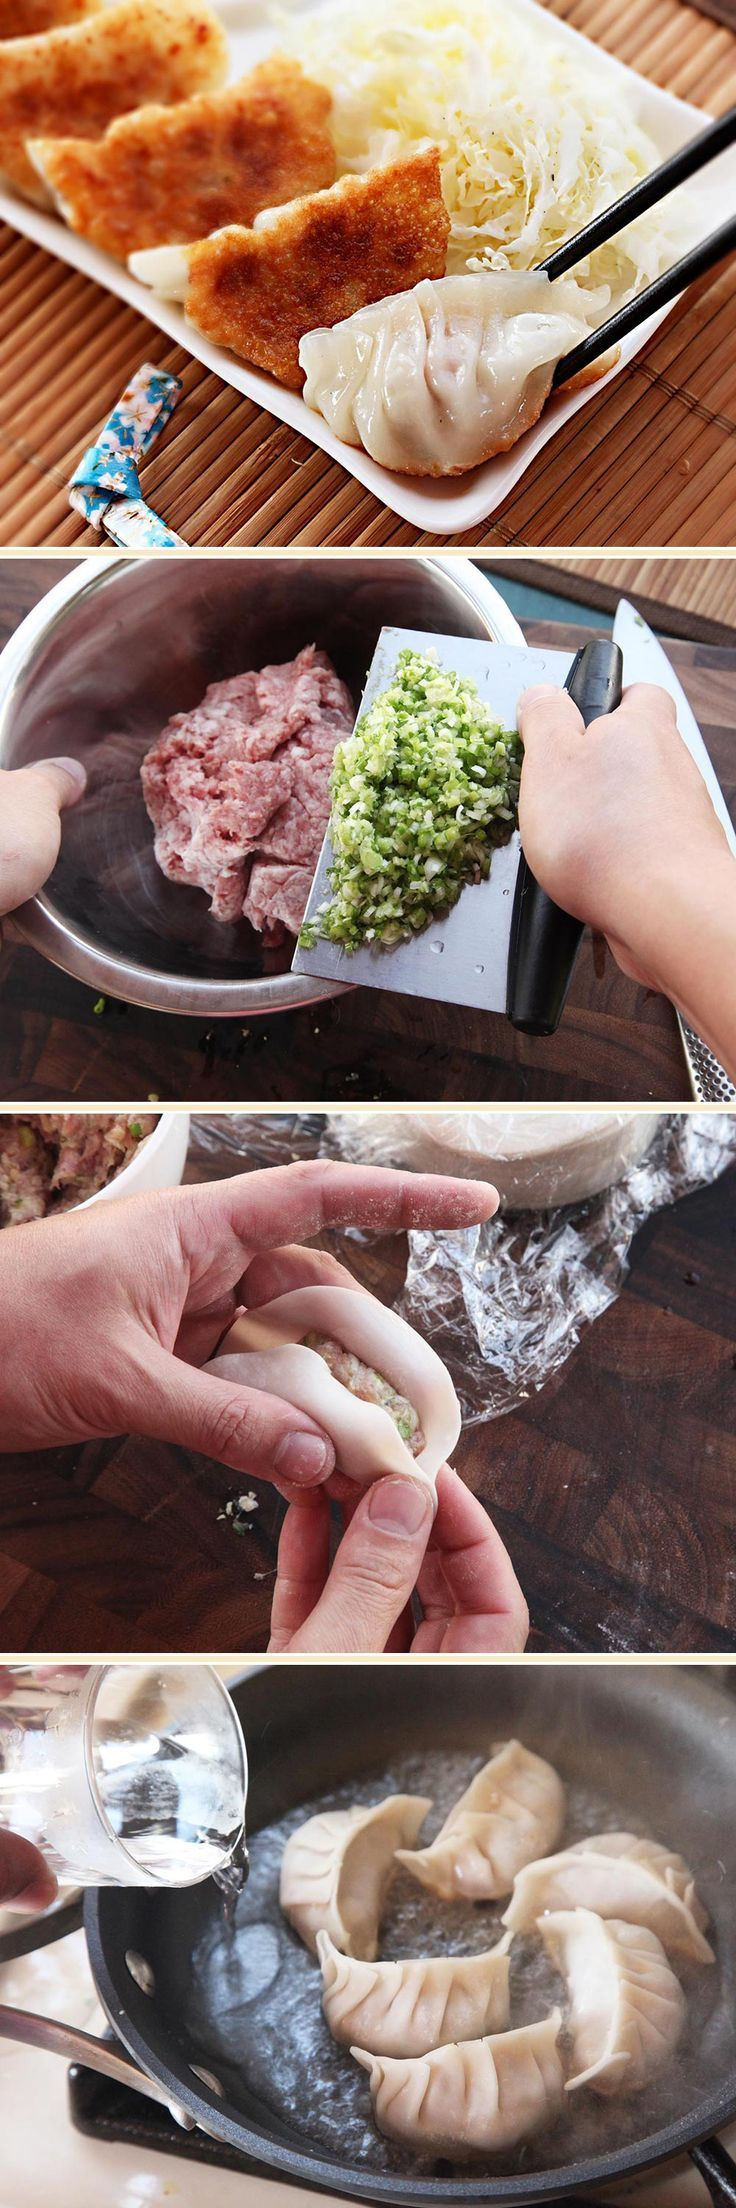 to Make Japanese-Style Pork and Cabbage Dumplings (Gyoza) How to Make Potstickers (Japanese-style Gyoza). Step-by-step instructions, photos, videos, and recipe!How to Make Potstickers (Japanese-style Gyoza). Step-by-step instructions, photos, videos, and recipe!